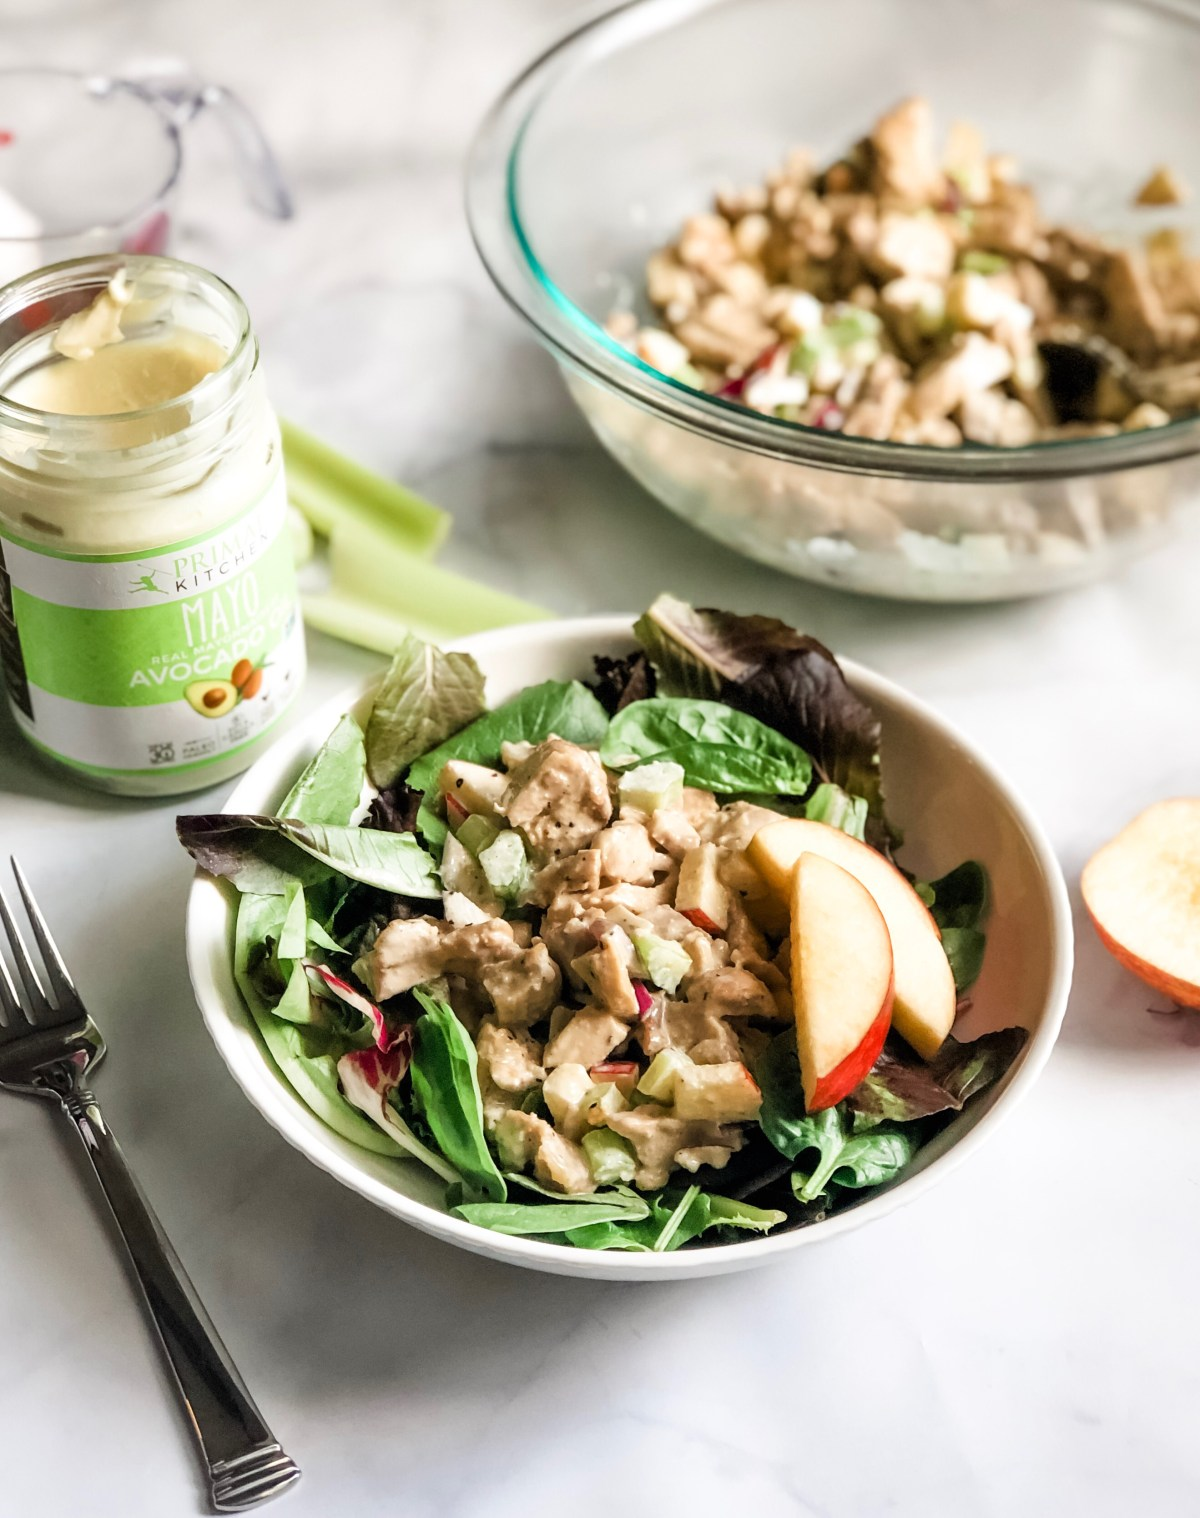 30-Minute Paleo Chicken Salad